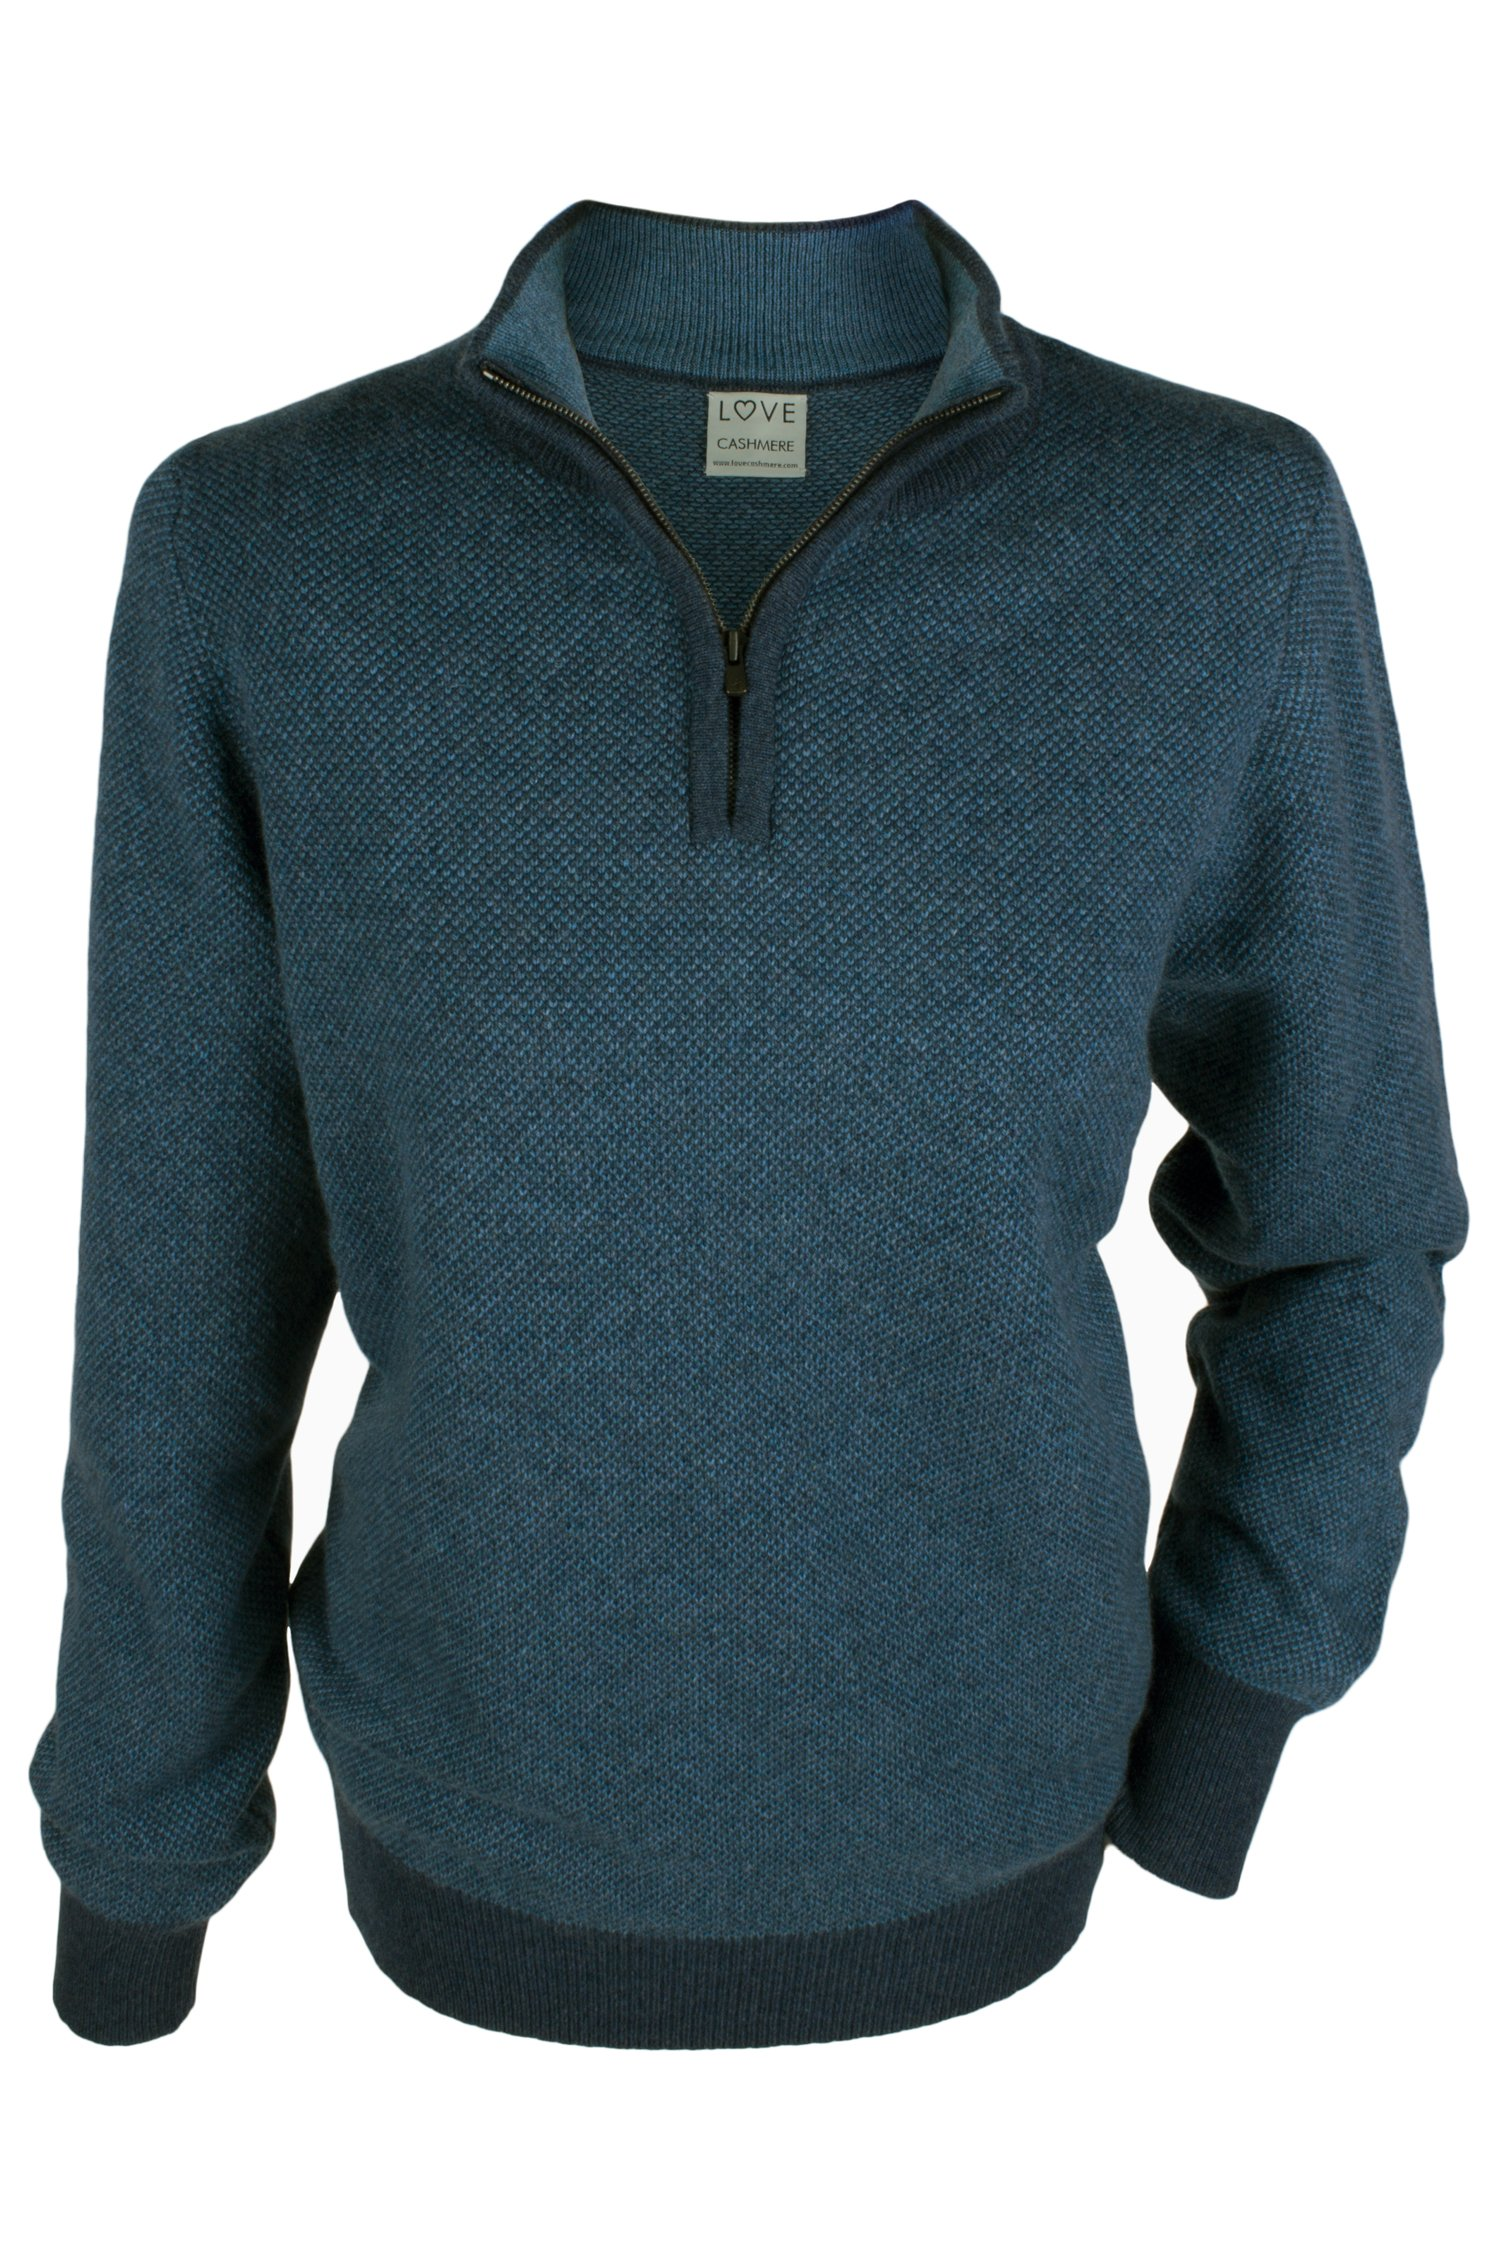 Ladies 100% Cashmere Zip Neck Oversize Sweater - Denim Blue Mix - made in Scotland by Love Cashmere by Love Cashmere (Image #1)